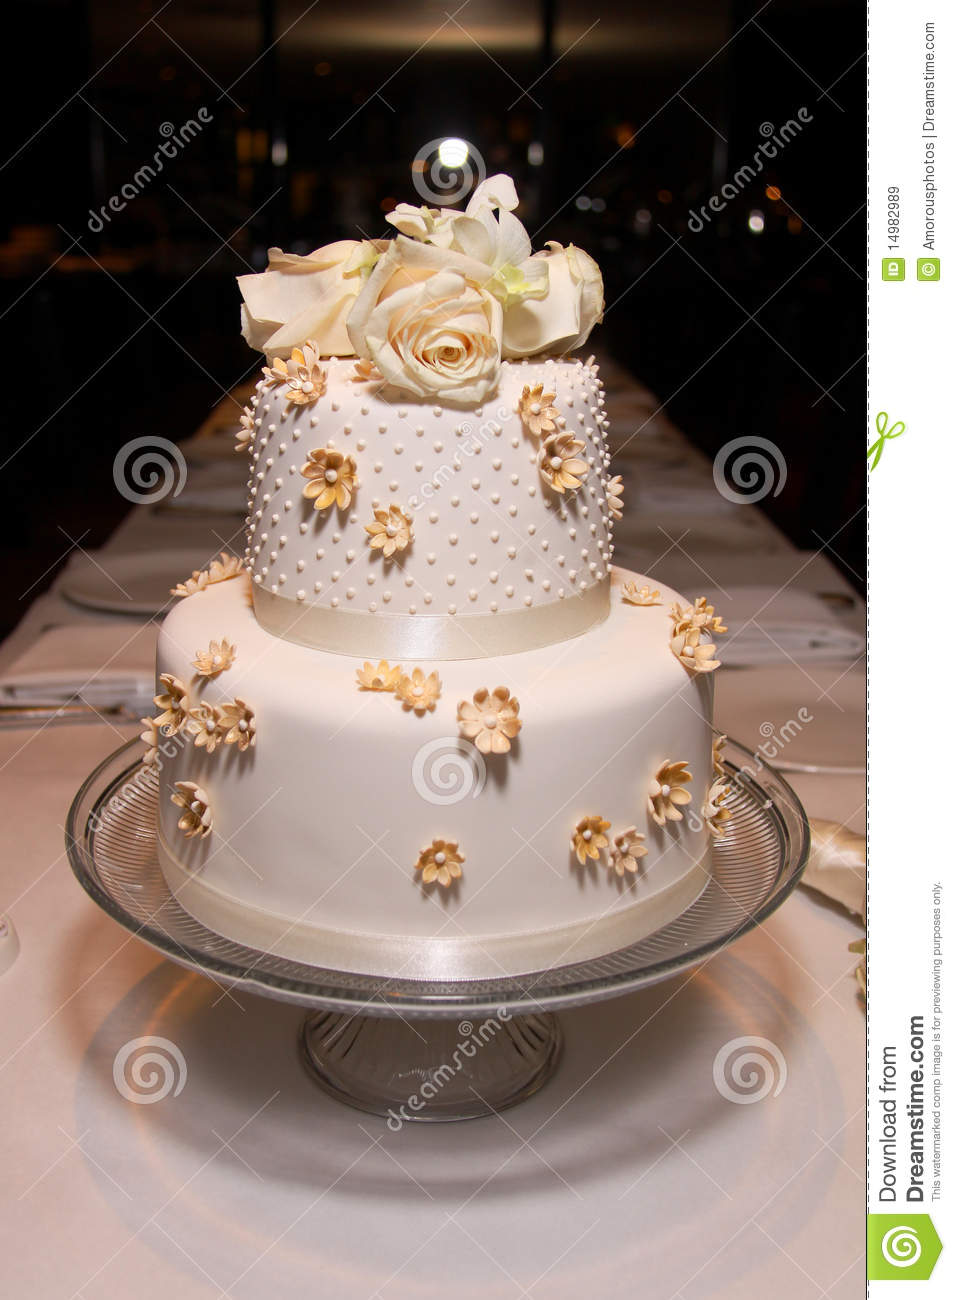 Little Classic Wedding Cake 2 Stock Image Image Of